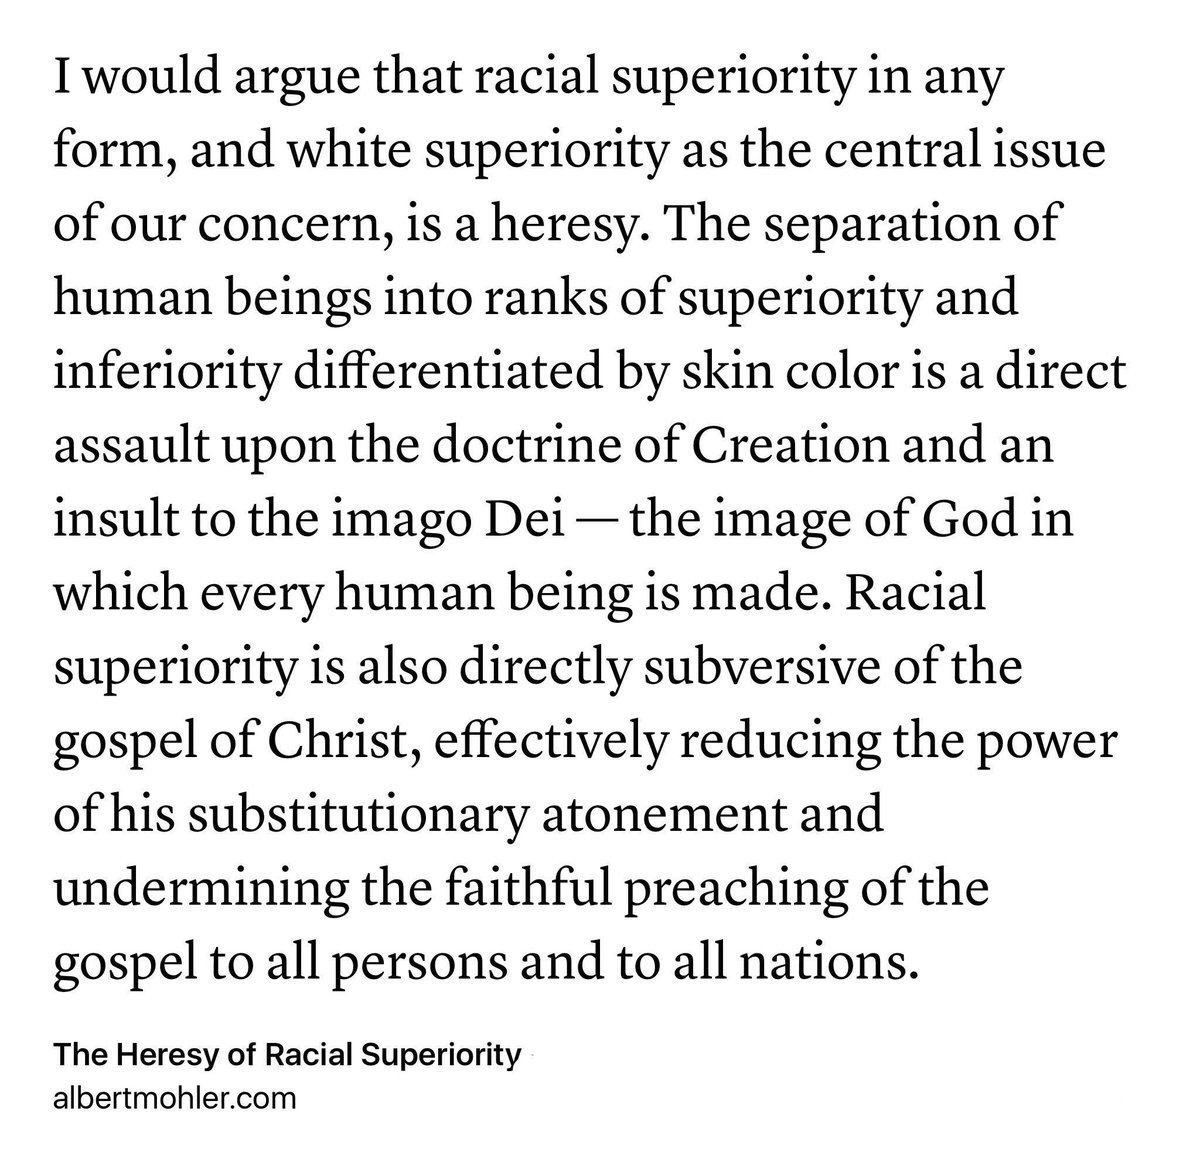 Claims of racial superiority are an assault on God's glory in creation and the gospel of Jesus Christ. https://t.co/cZ66IU7Ujc